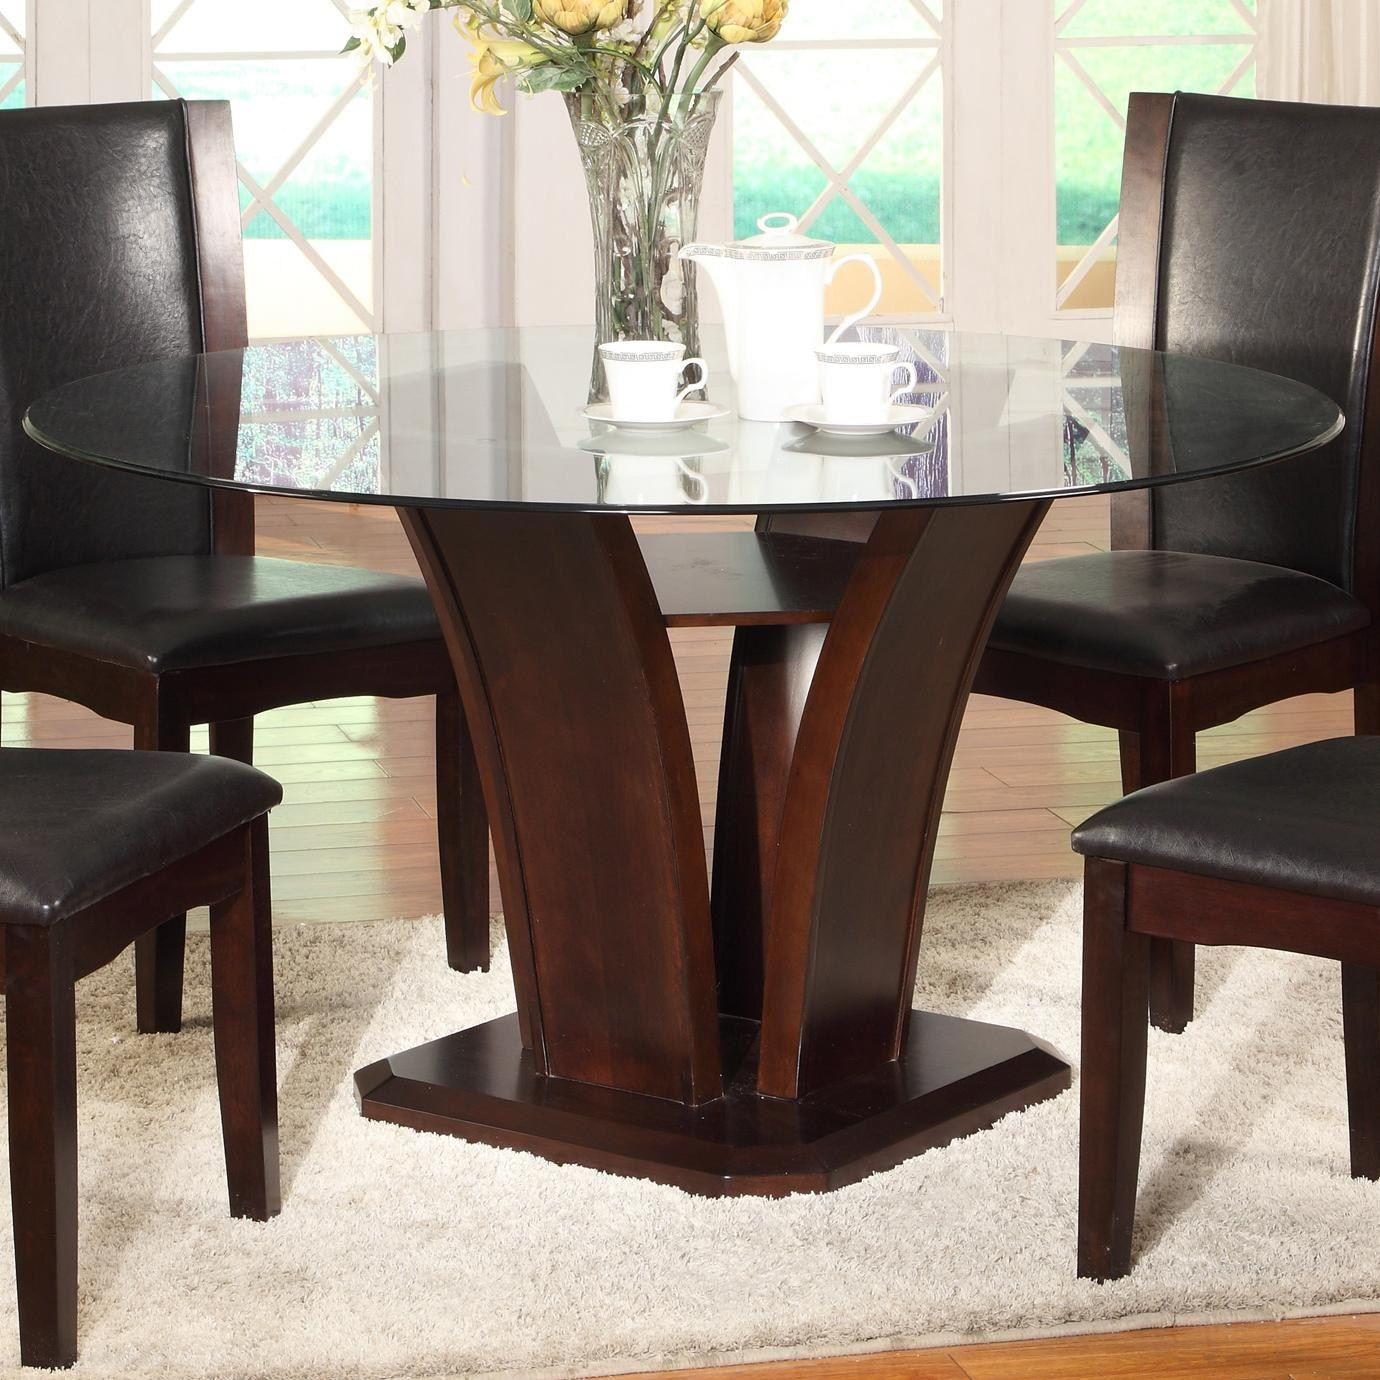 Create A Unique Look With Glass Top Dining Table Darbylanefurniture Com In 2020 Round Dining Room Glass Top Dining Table Round Dining Room Table